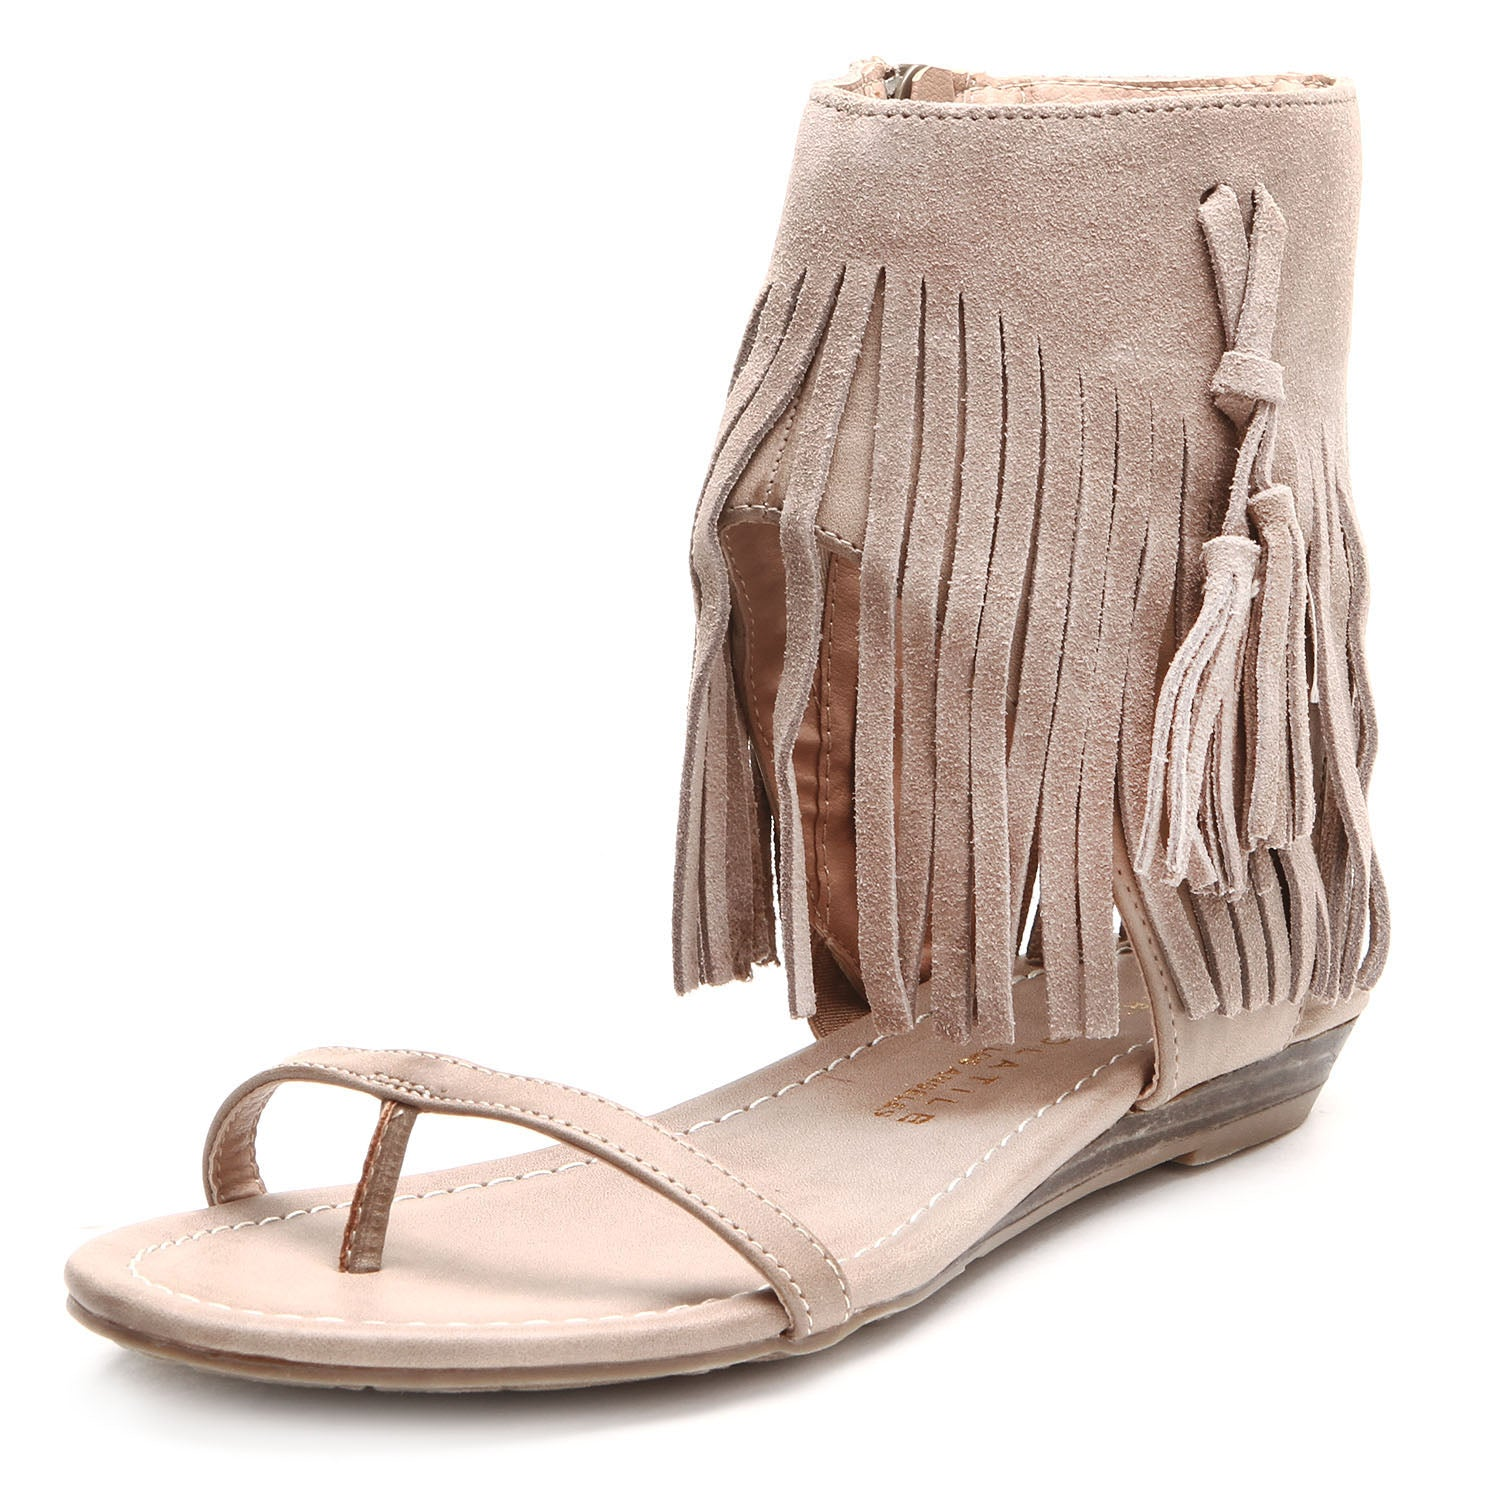 Fringe Sandals in Taupe